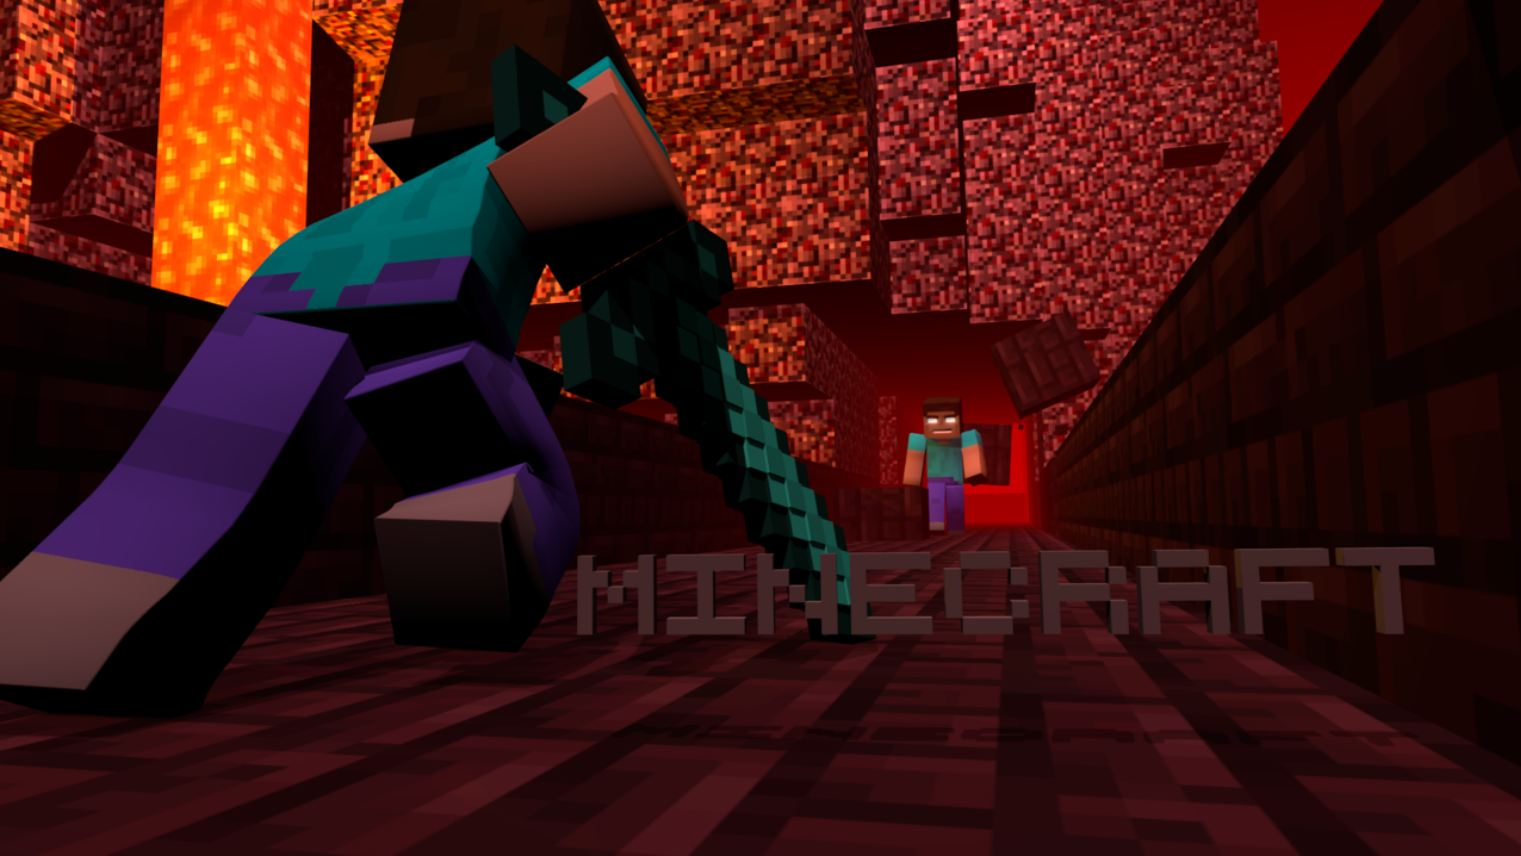 wallpaper minecraft avec un combat épique dans le nether contre Herobrine